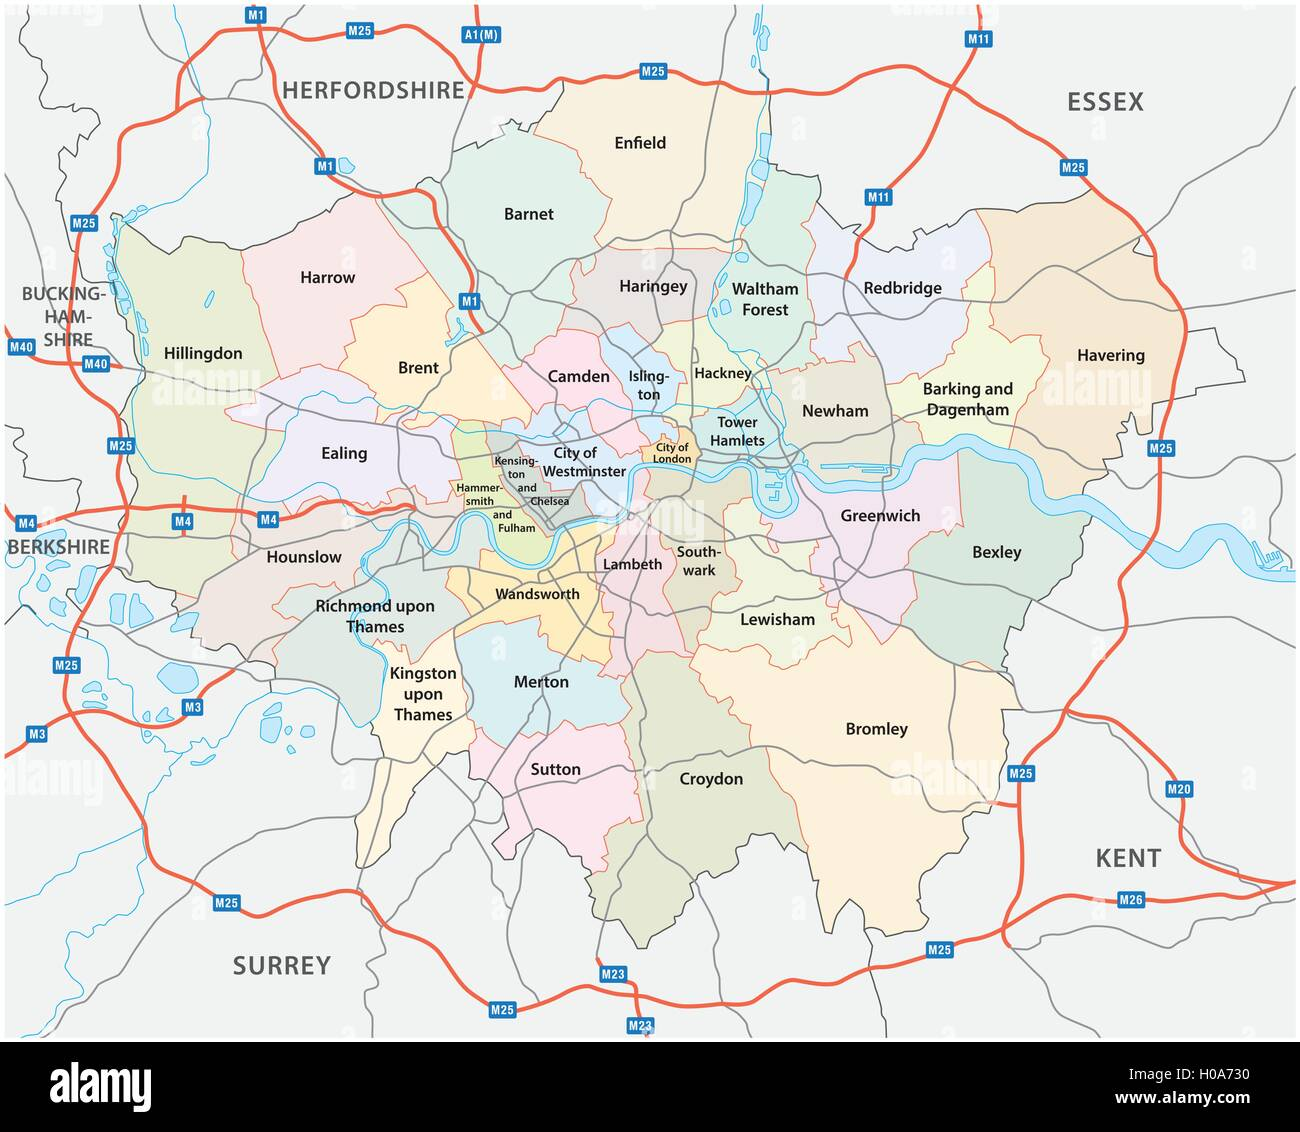 greater london road and administrative map - Stock Image